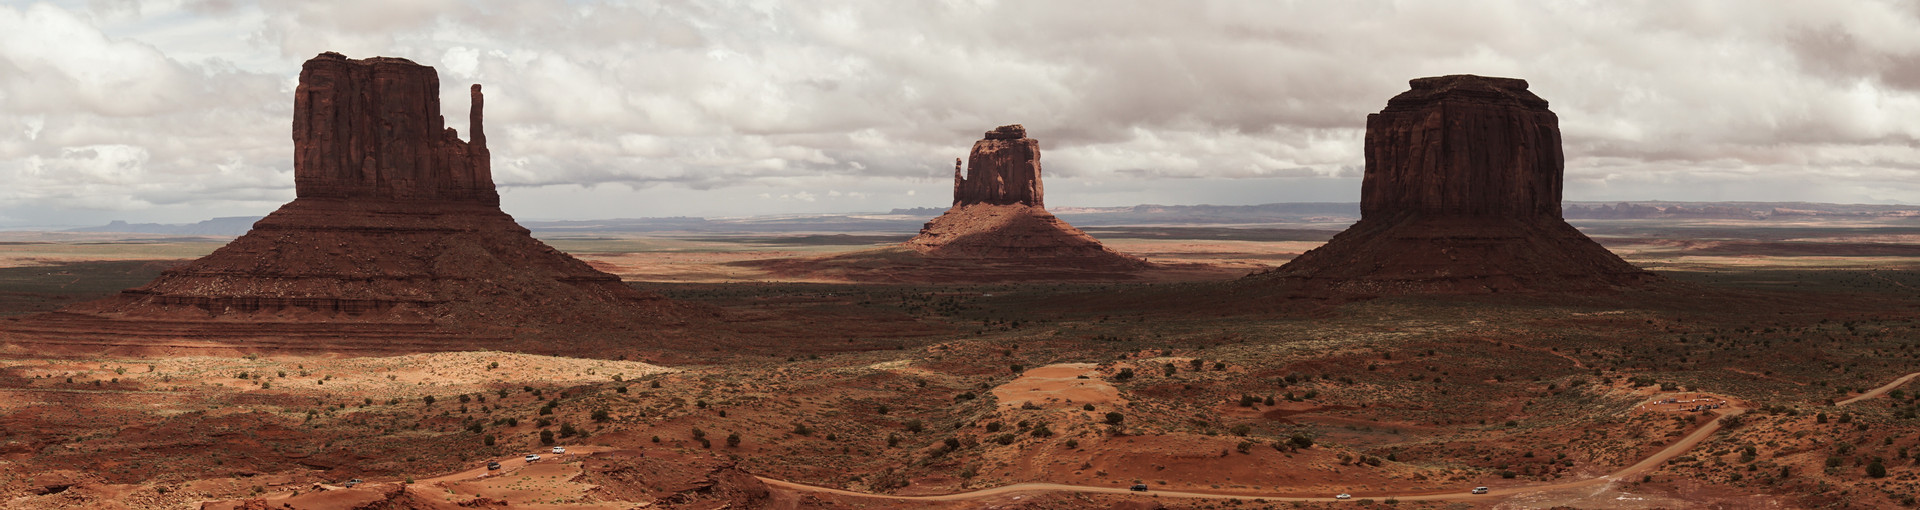 monument_valley_3.jpg